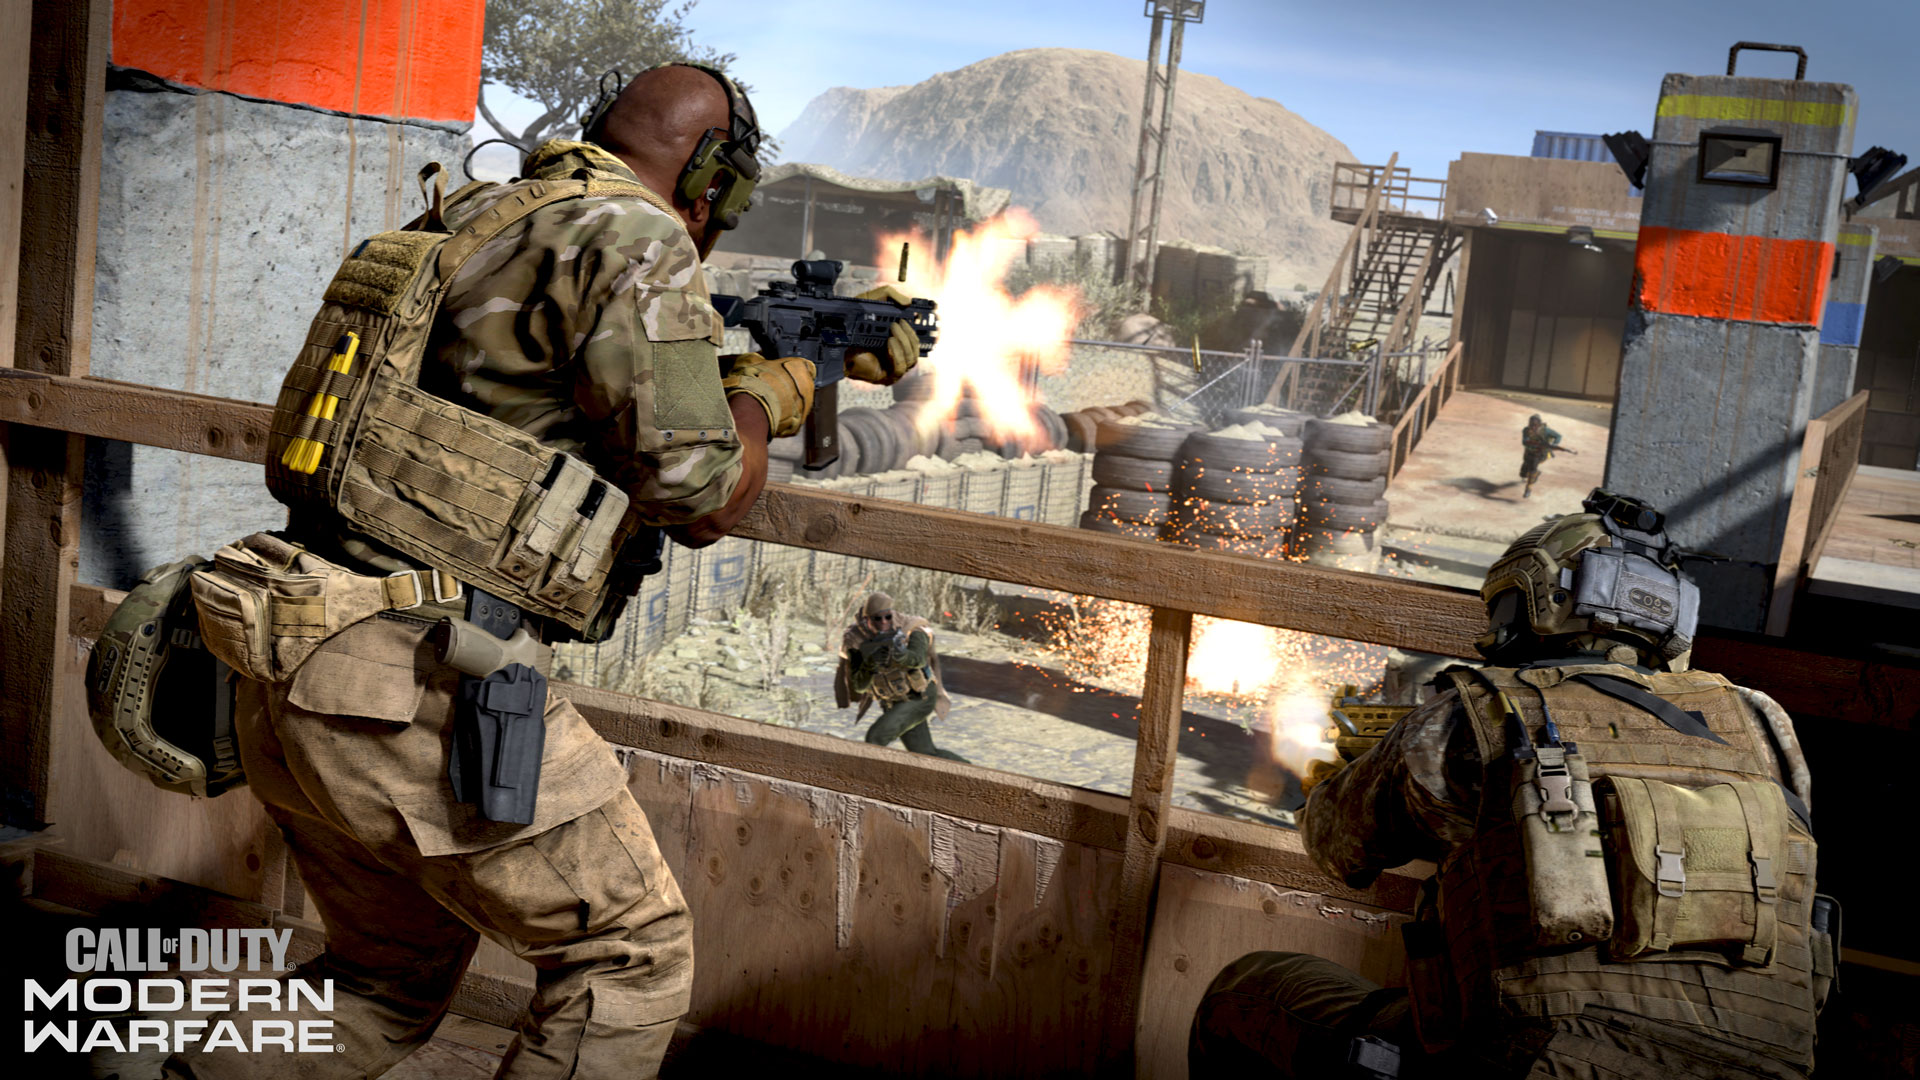 Modern Warfare December 10 patch notes - new game modes, updates, more